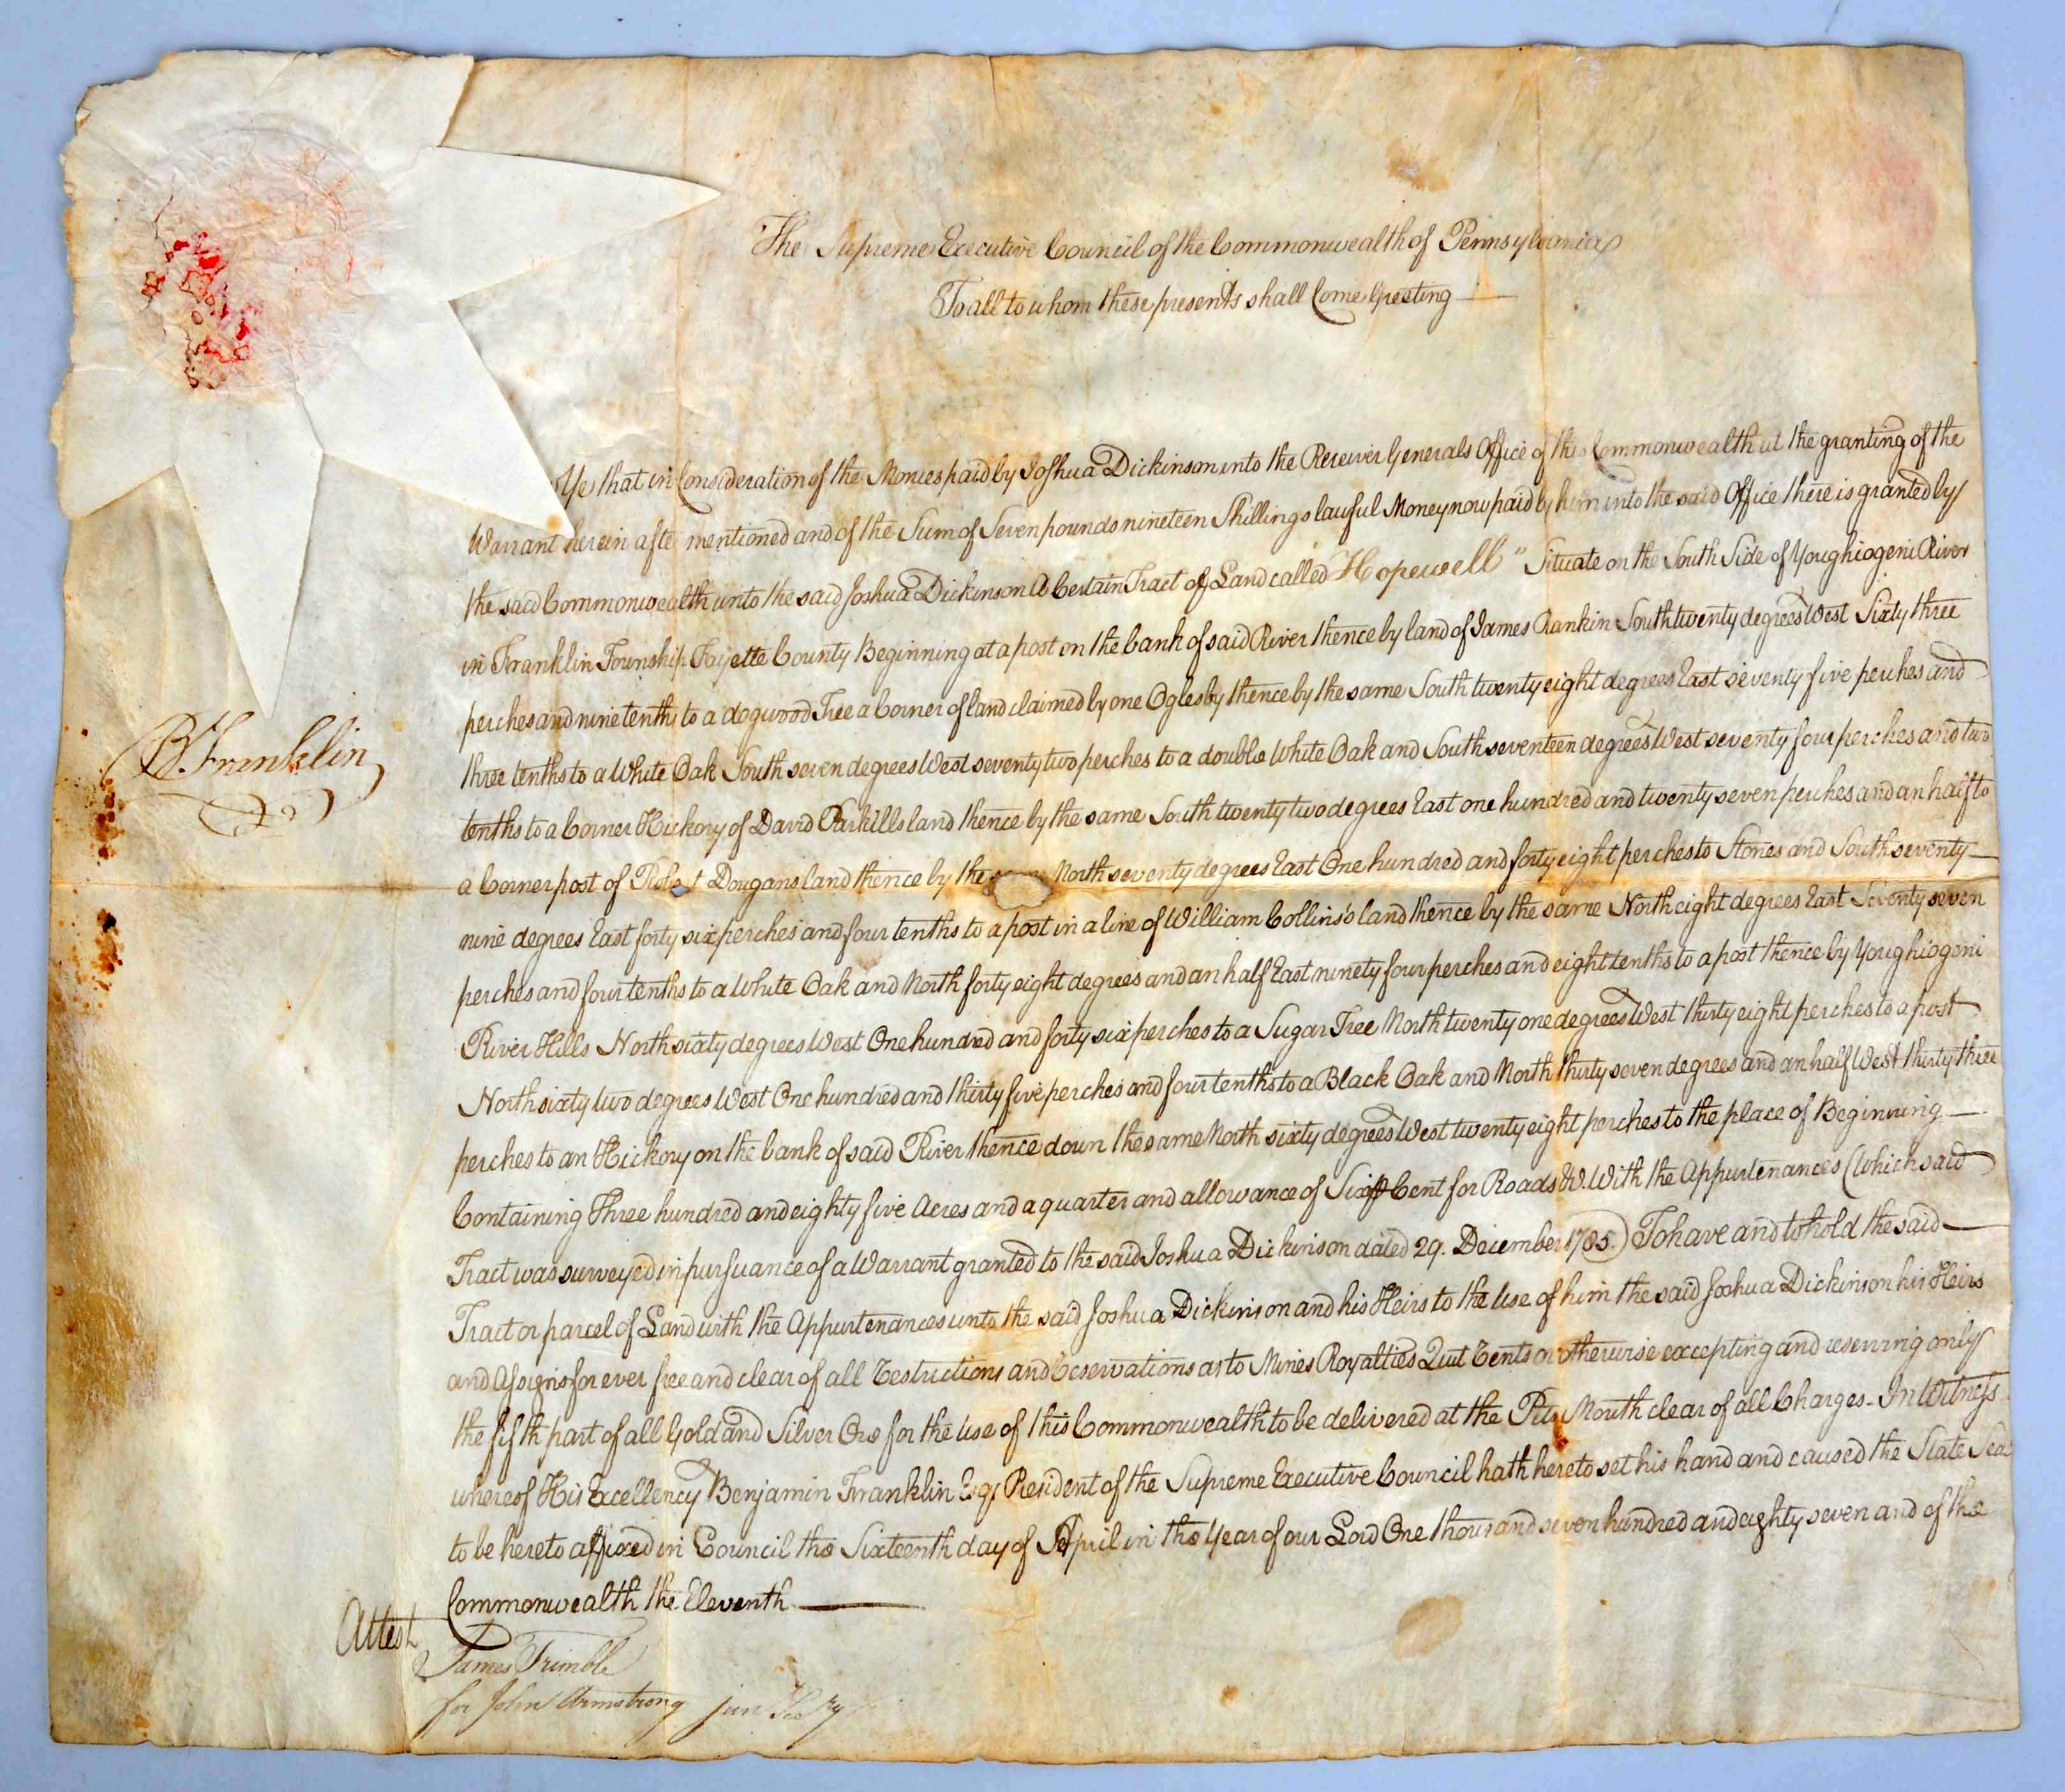 1787 land deed signed by Benjamin Franklin